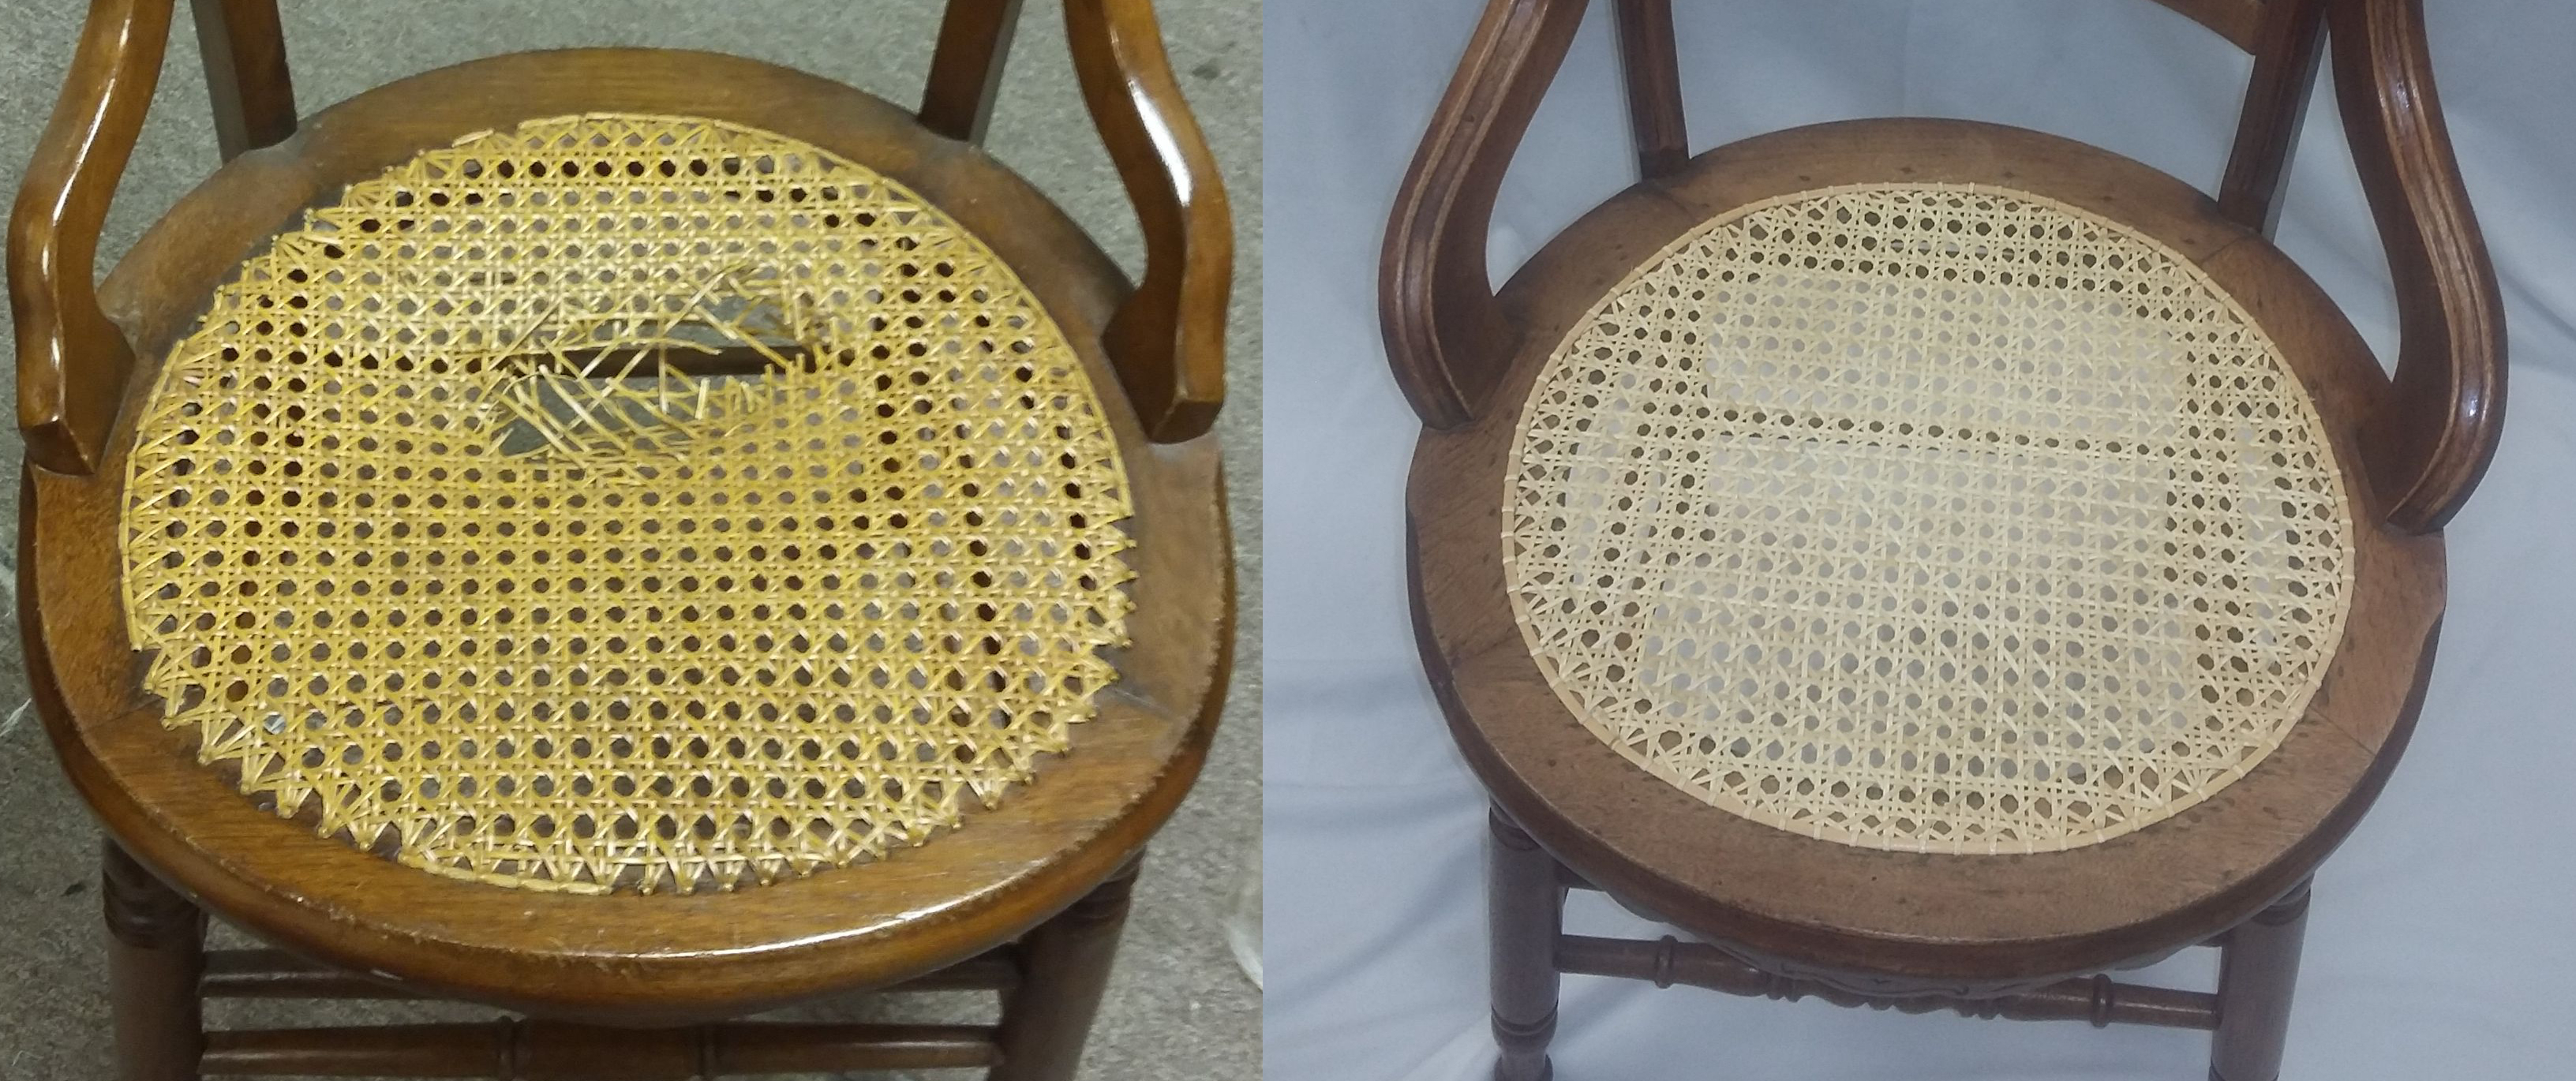 Furniture Repair Residential Refinishing Commercial Chair